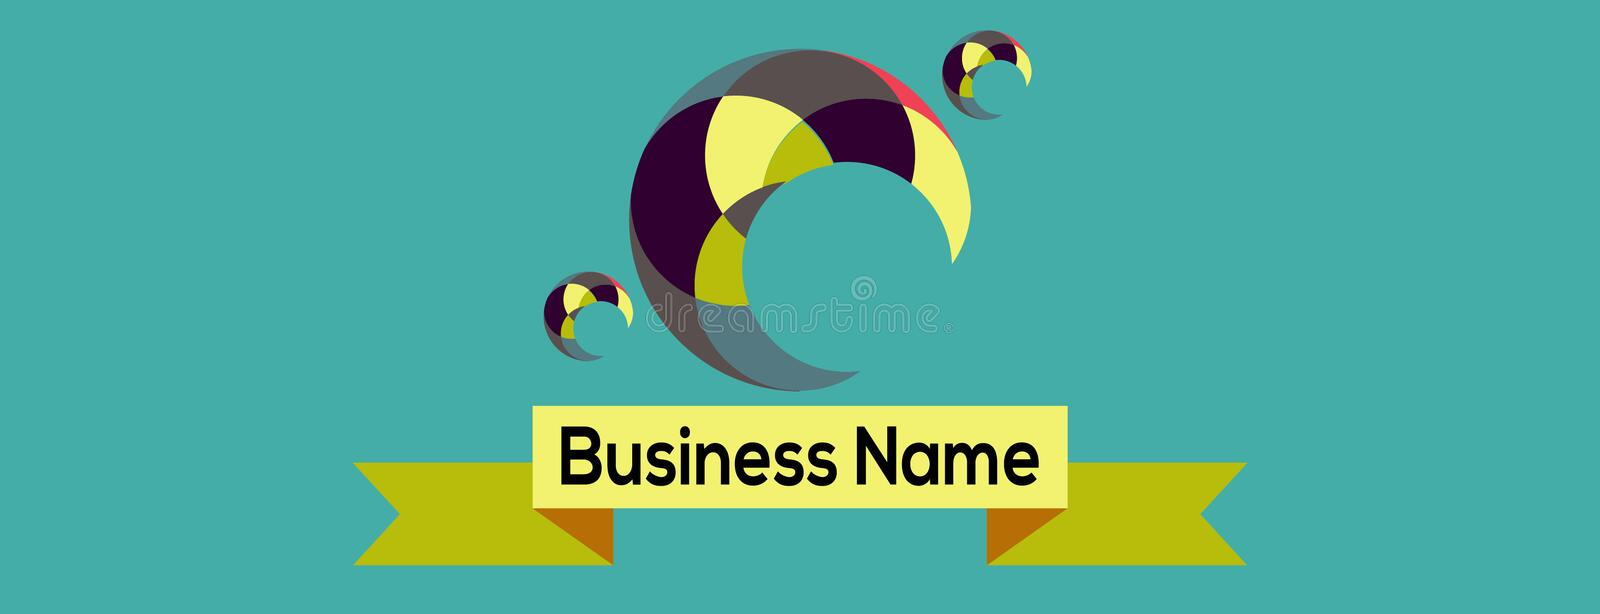 Design Modern Simple Business Logo. Place For Your Name Business, Text stock illustration